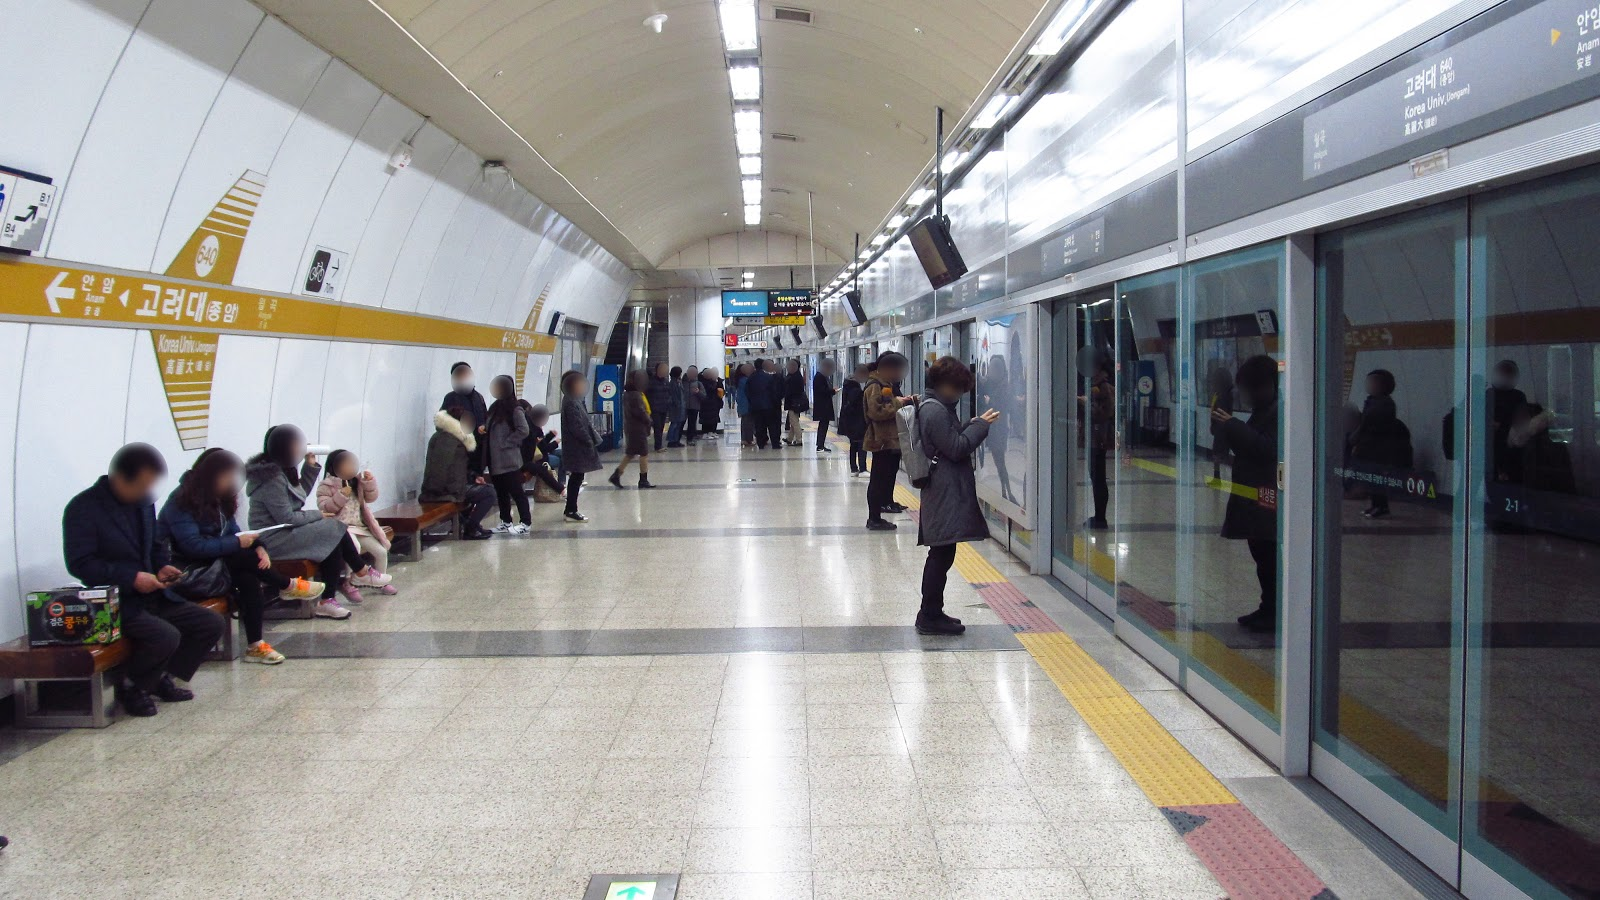 Seoul-metro-640-Korea-university-station-platform-20181125-153624